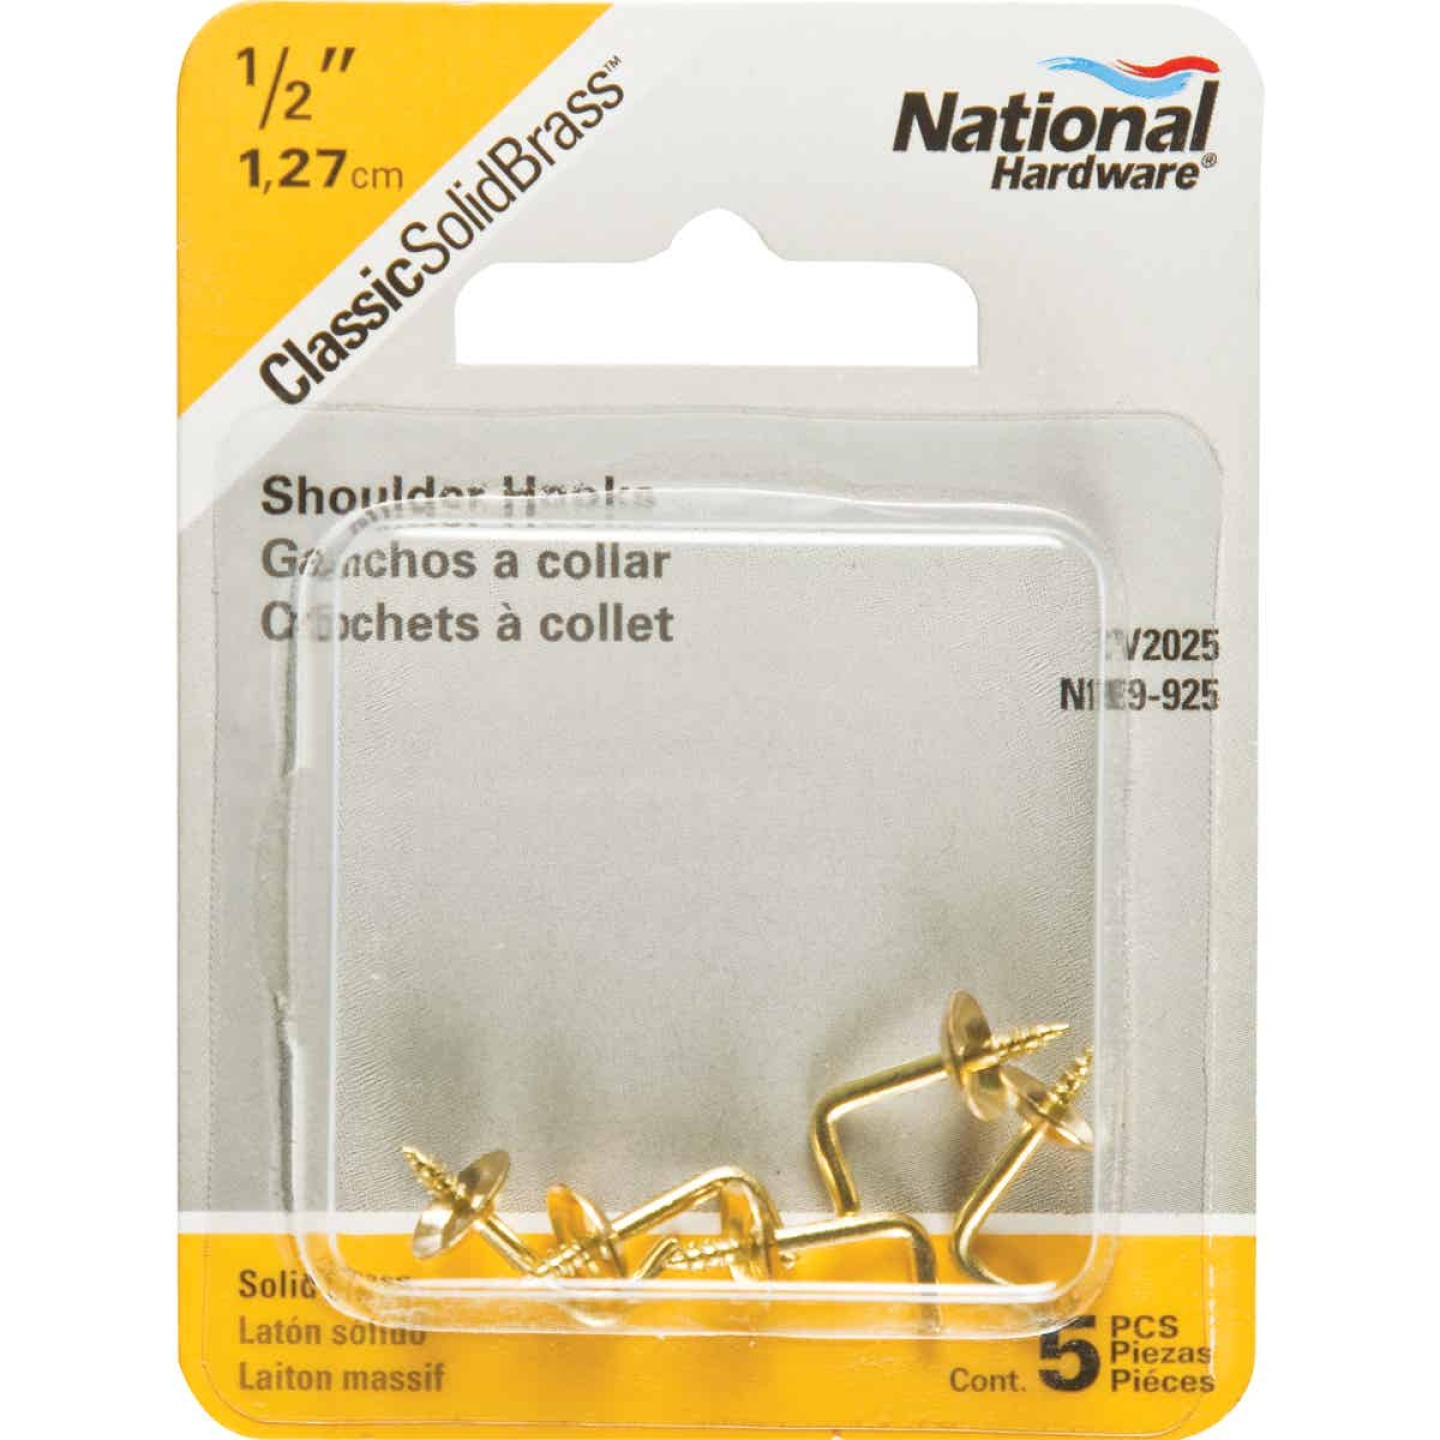 National 1/2 In. Solid Brass Shoulder Hook (5 Count) Image 2